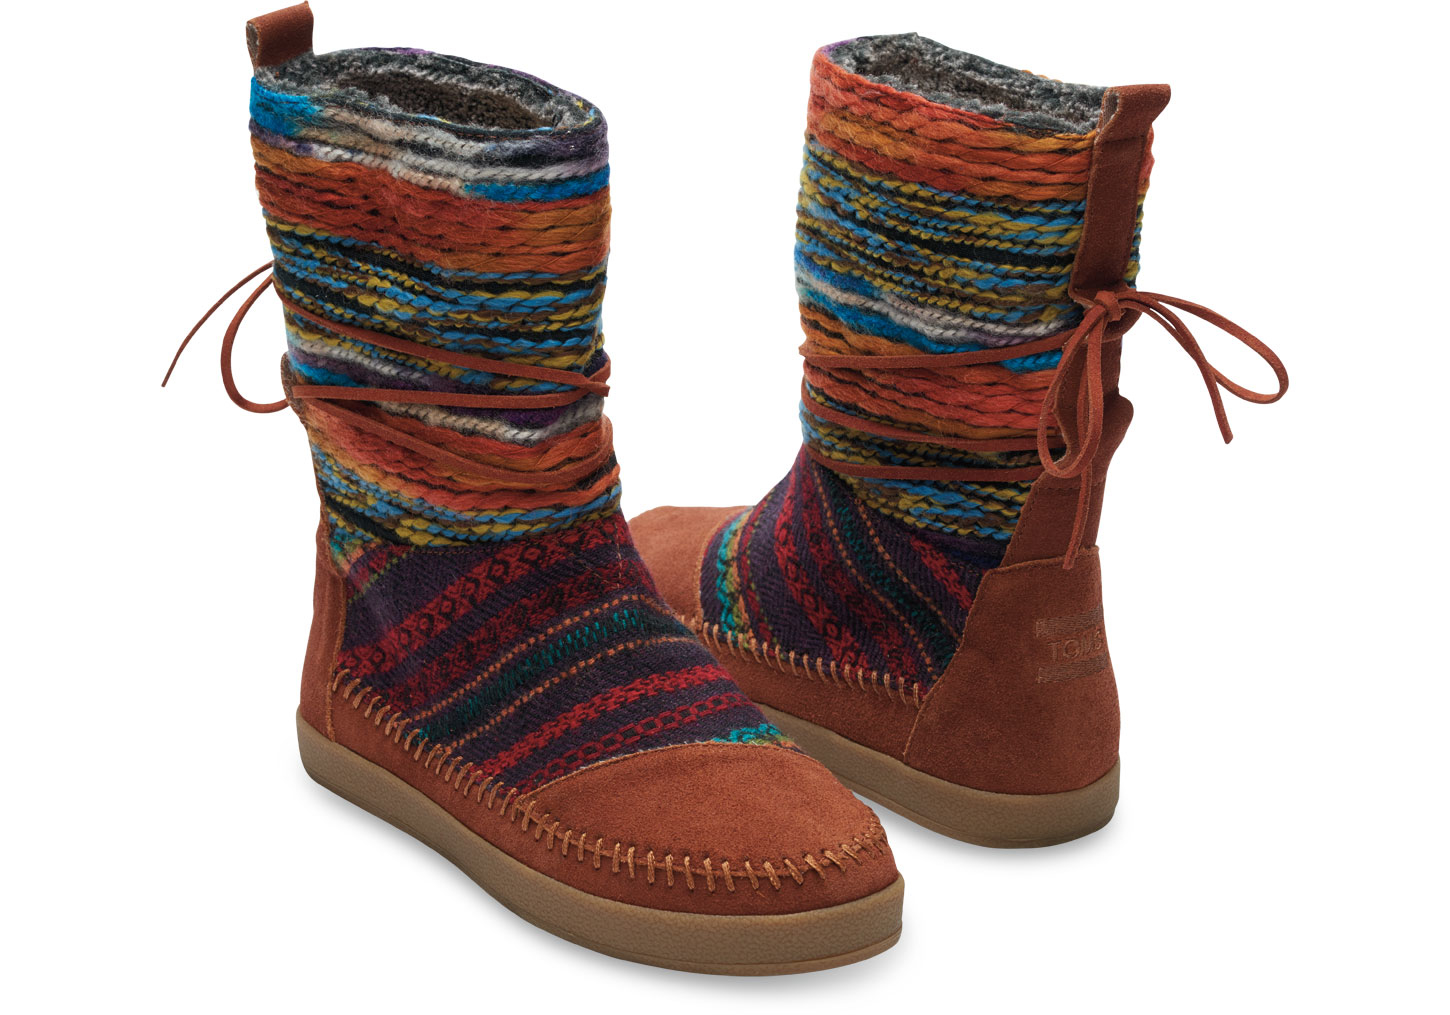 Toms Cognac Suede Textile Mix Womenu0026#39;s Nepal Boots In Brown | Lyst